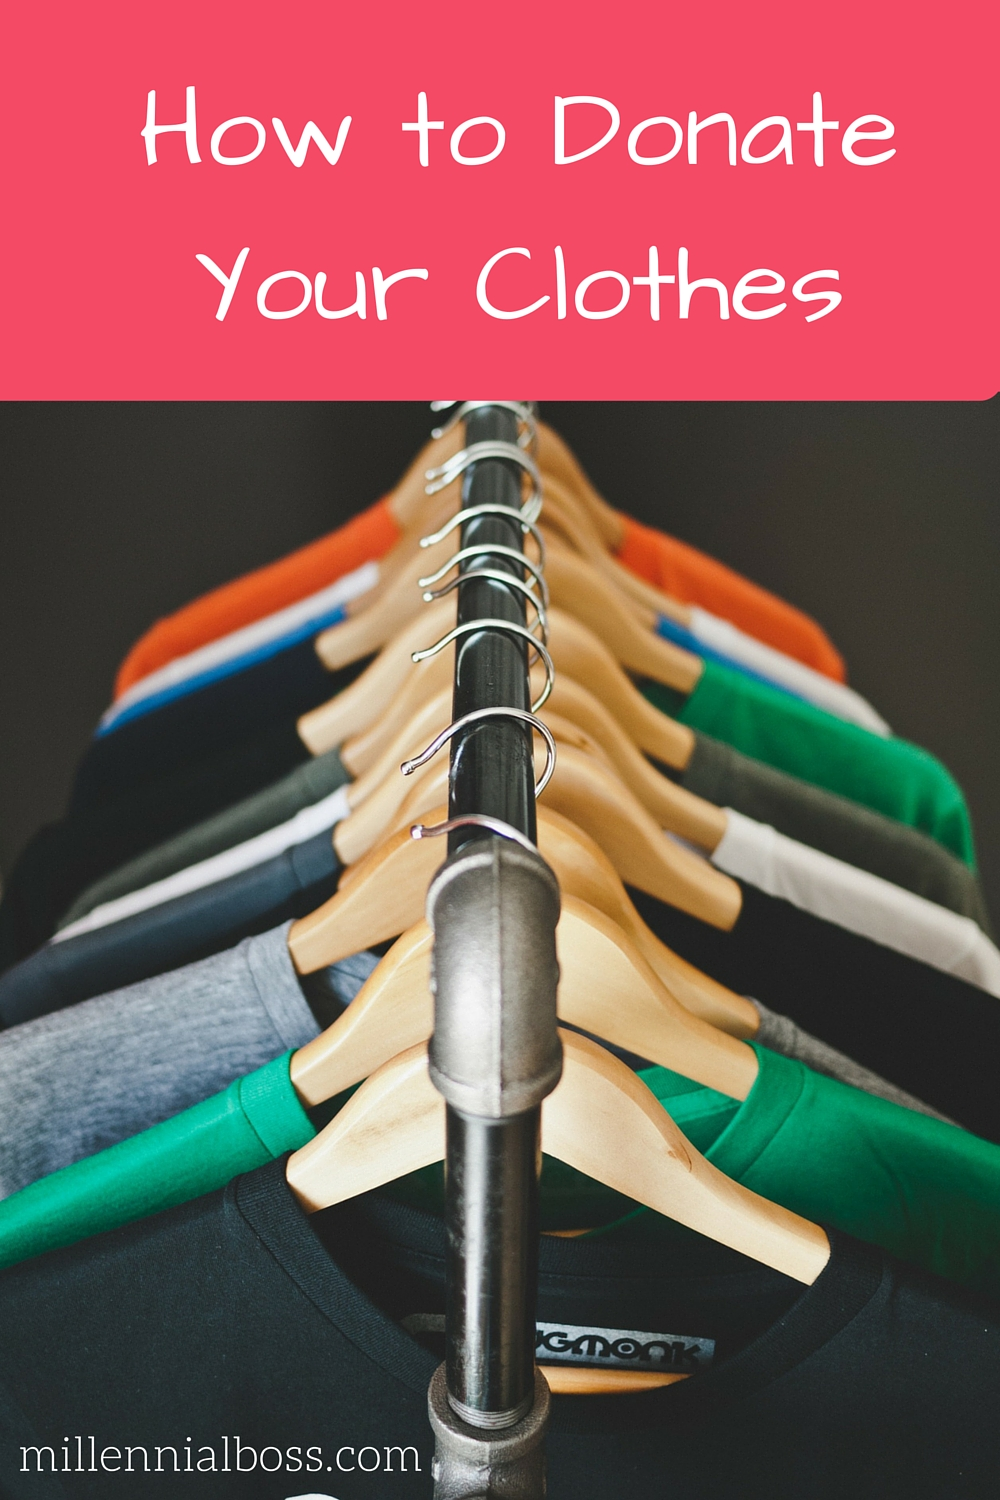 How to Get Rid of Your Clothes